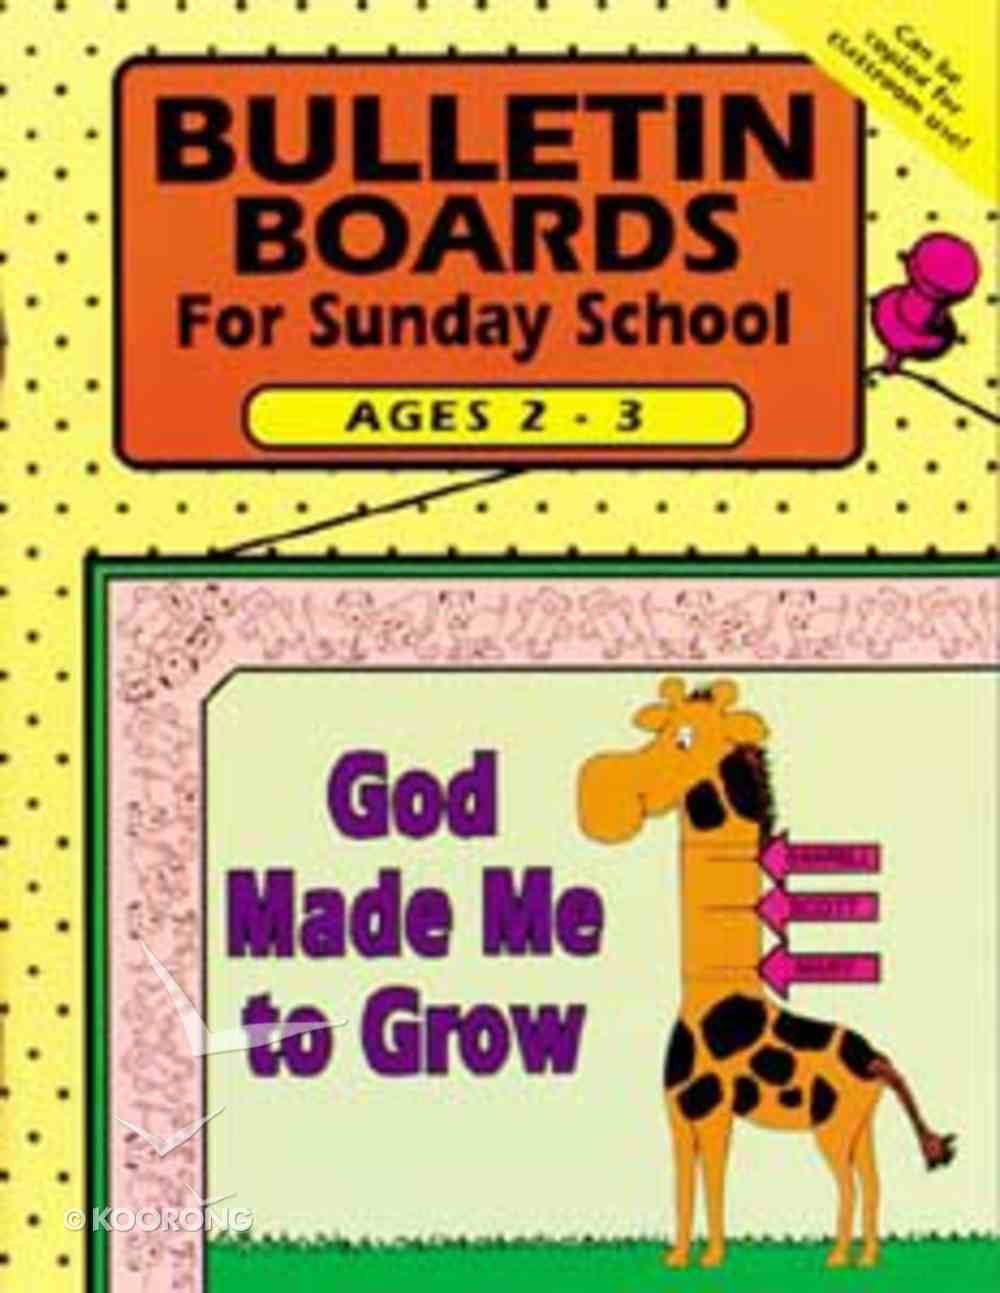 Bulletin Boards For Sunday School: Ages 2-3 Paperback